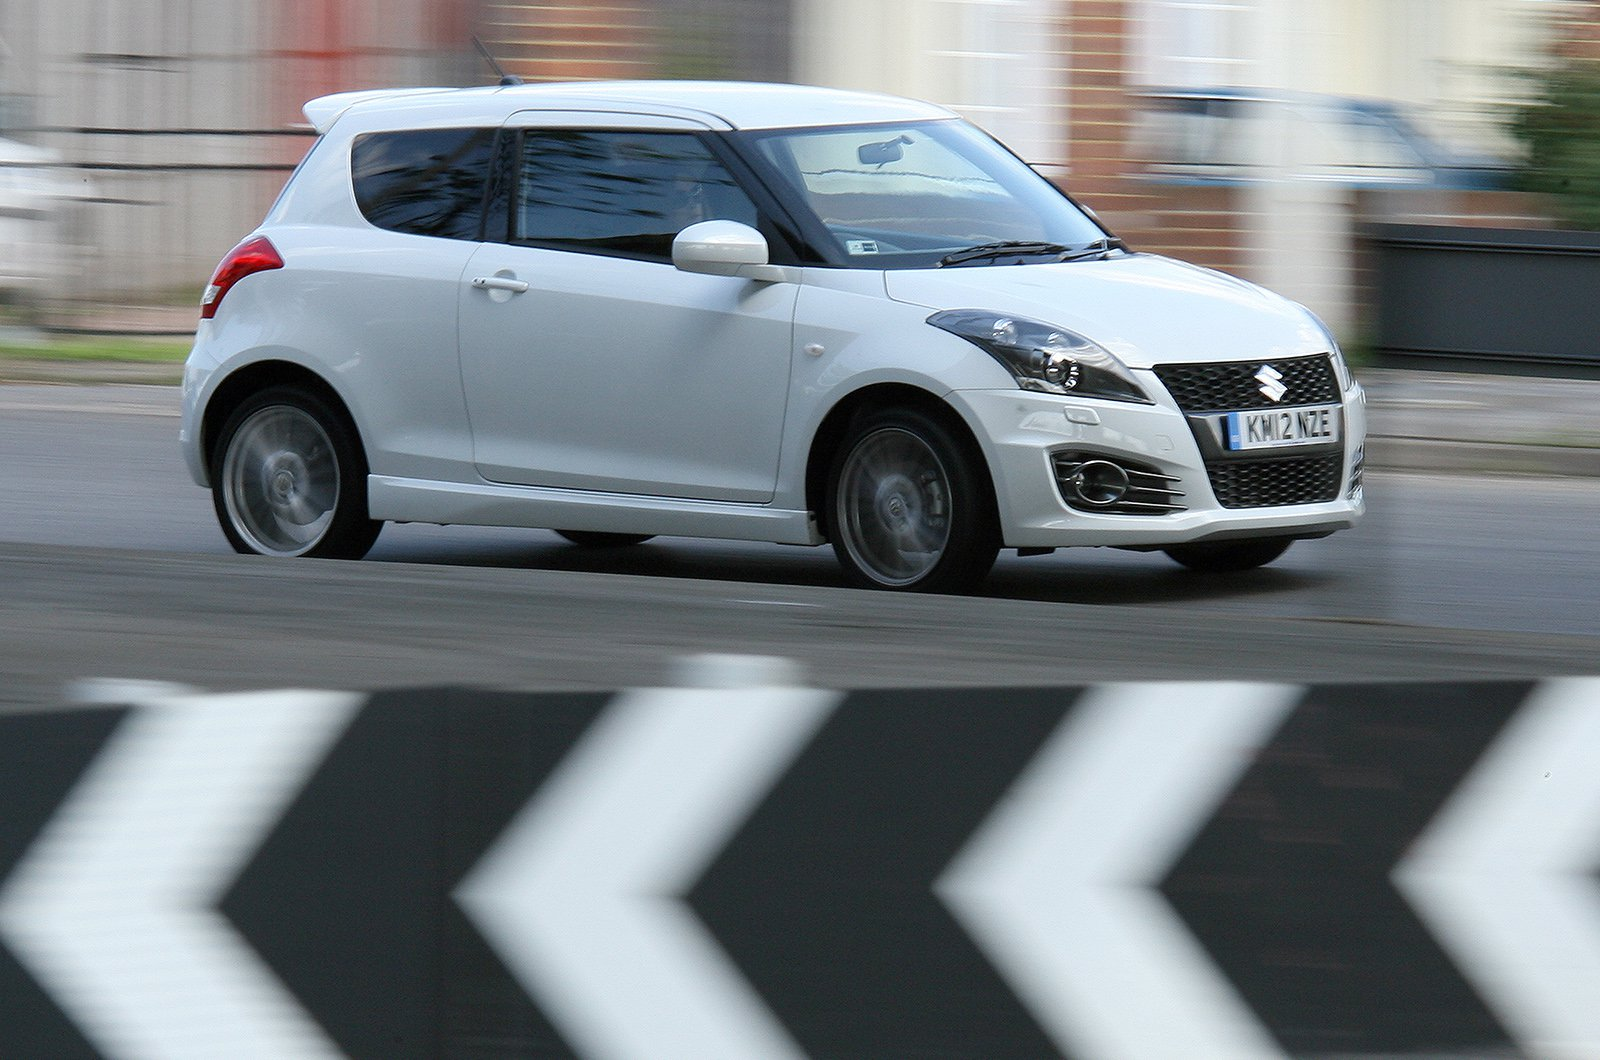 Used Suzuki Swift Sport 2012-2017